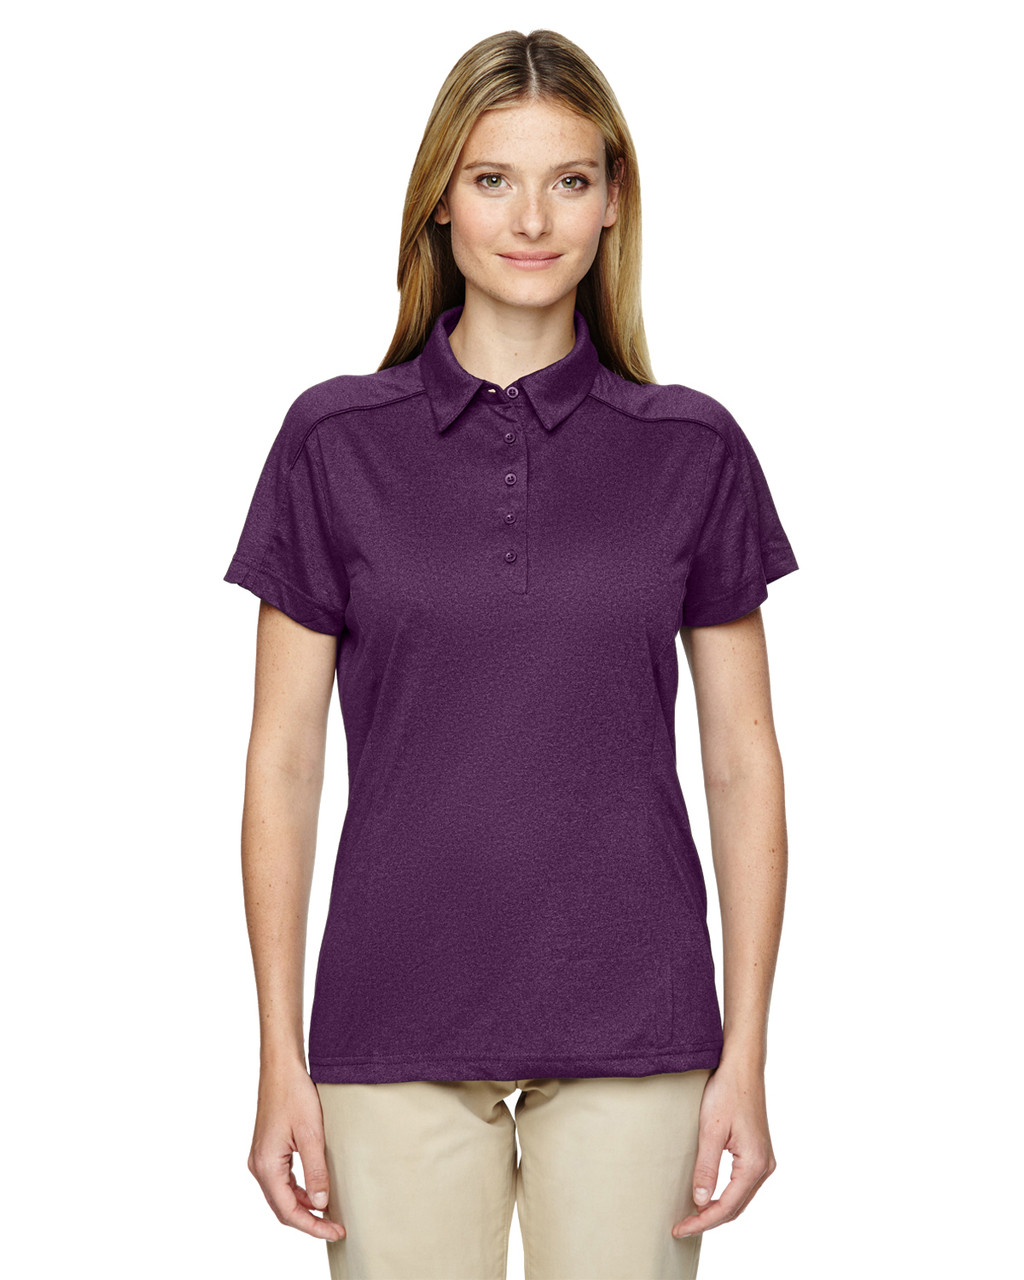 Mulberry Purple 75117 Ash City - Extreme Eperformance Mélange Polo Shirt